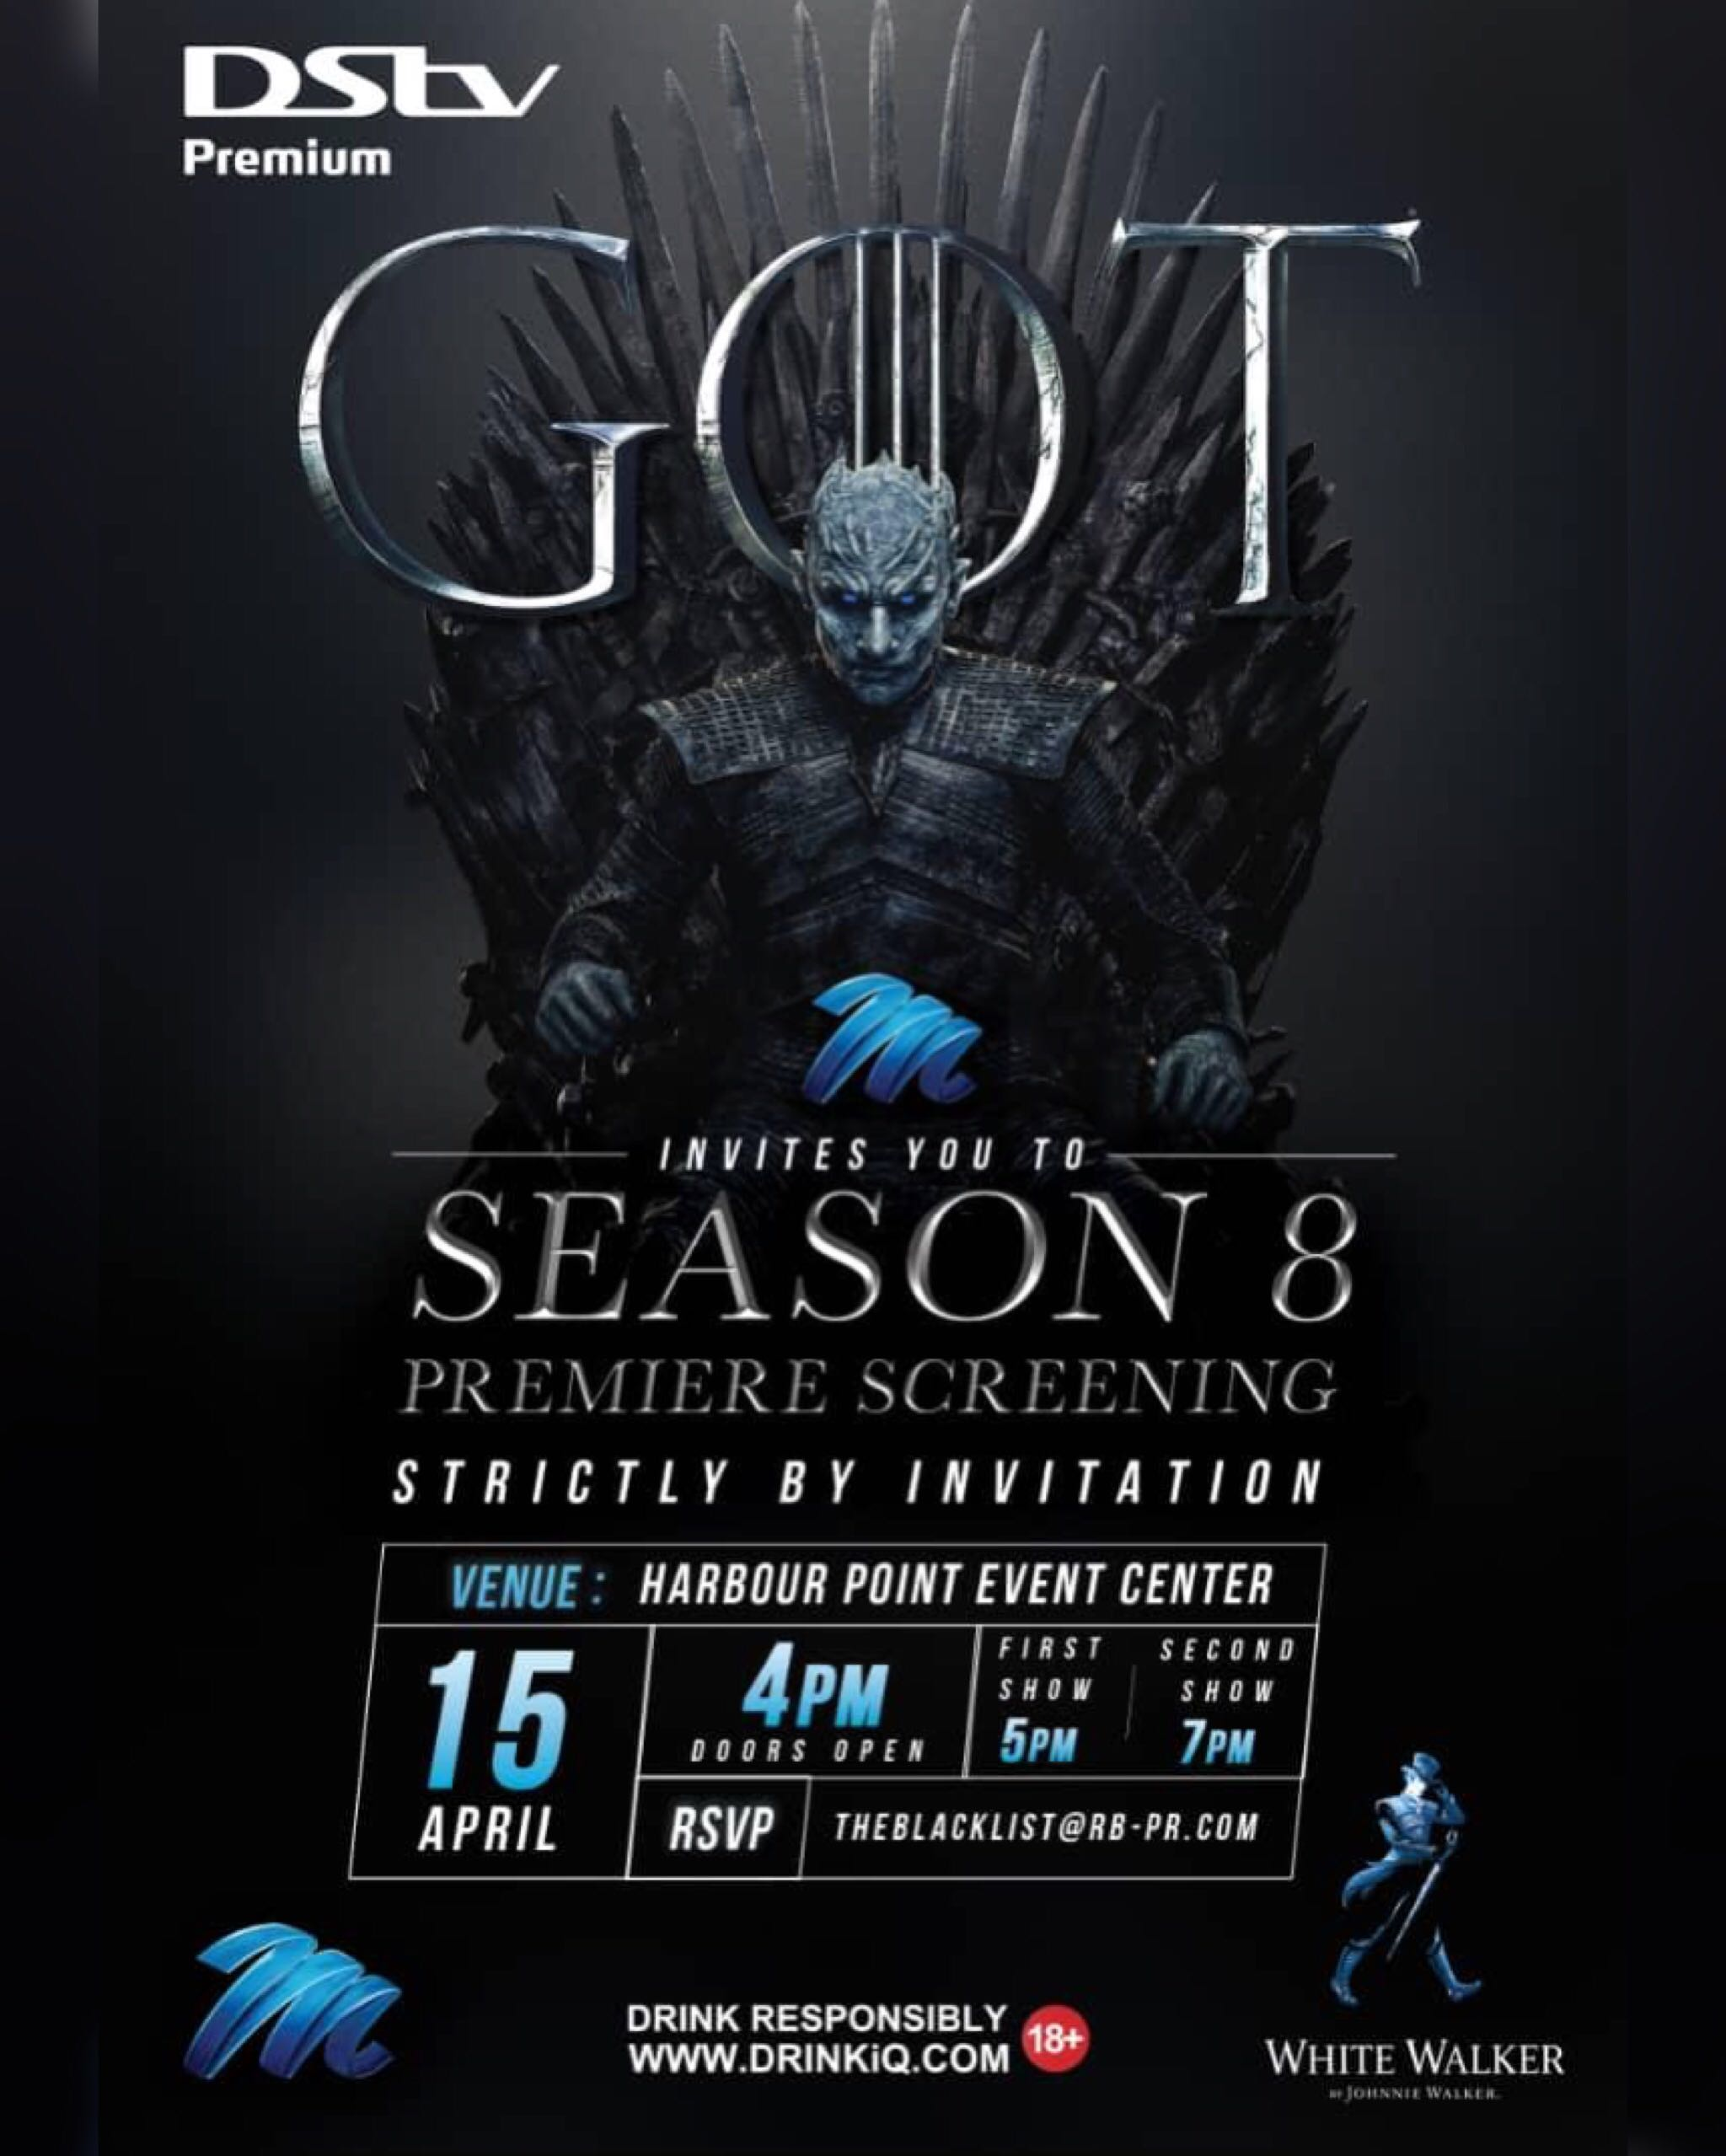 Game of Thrones Premieres